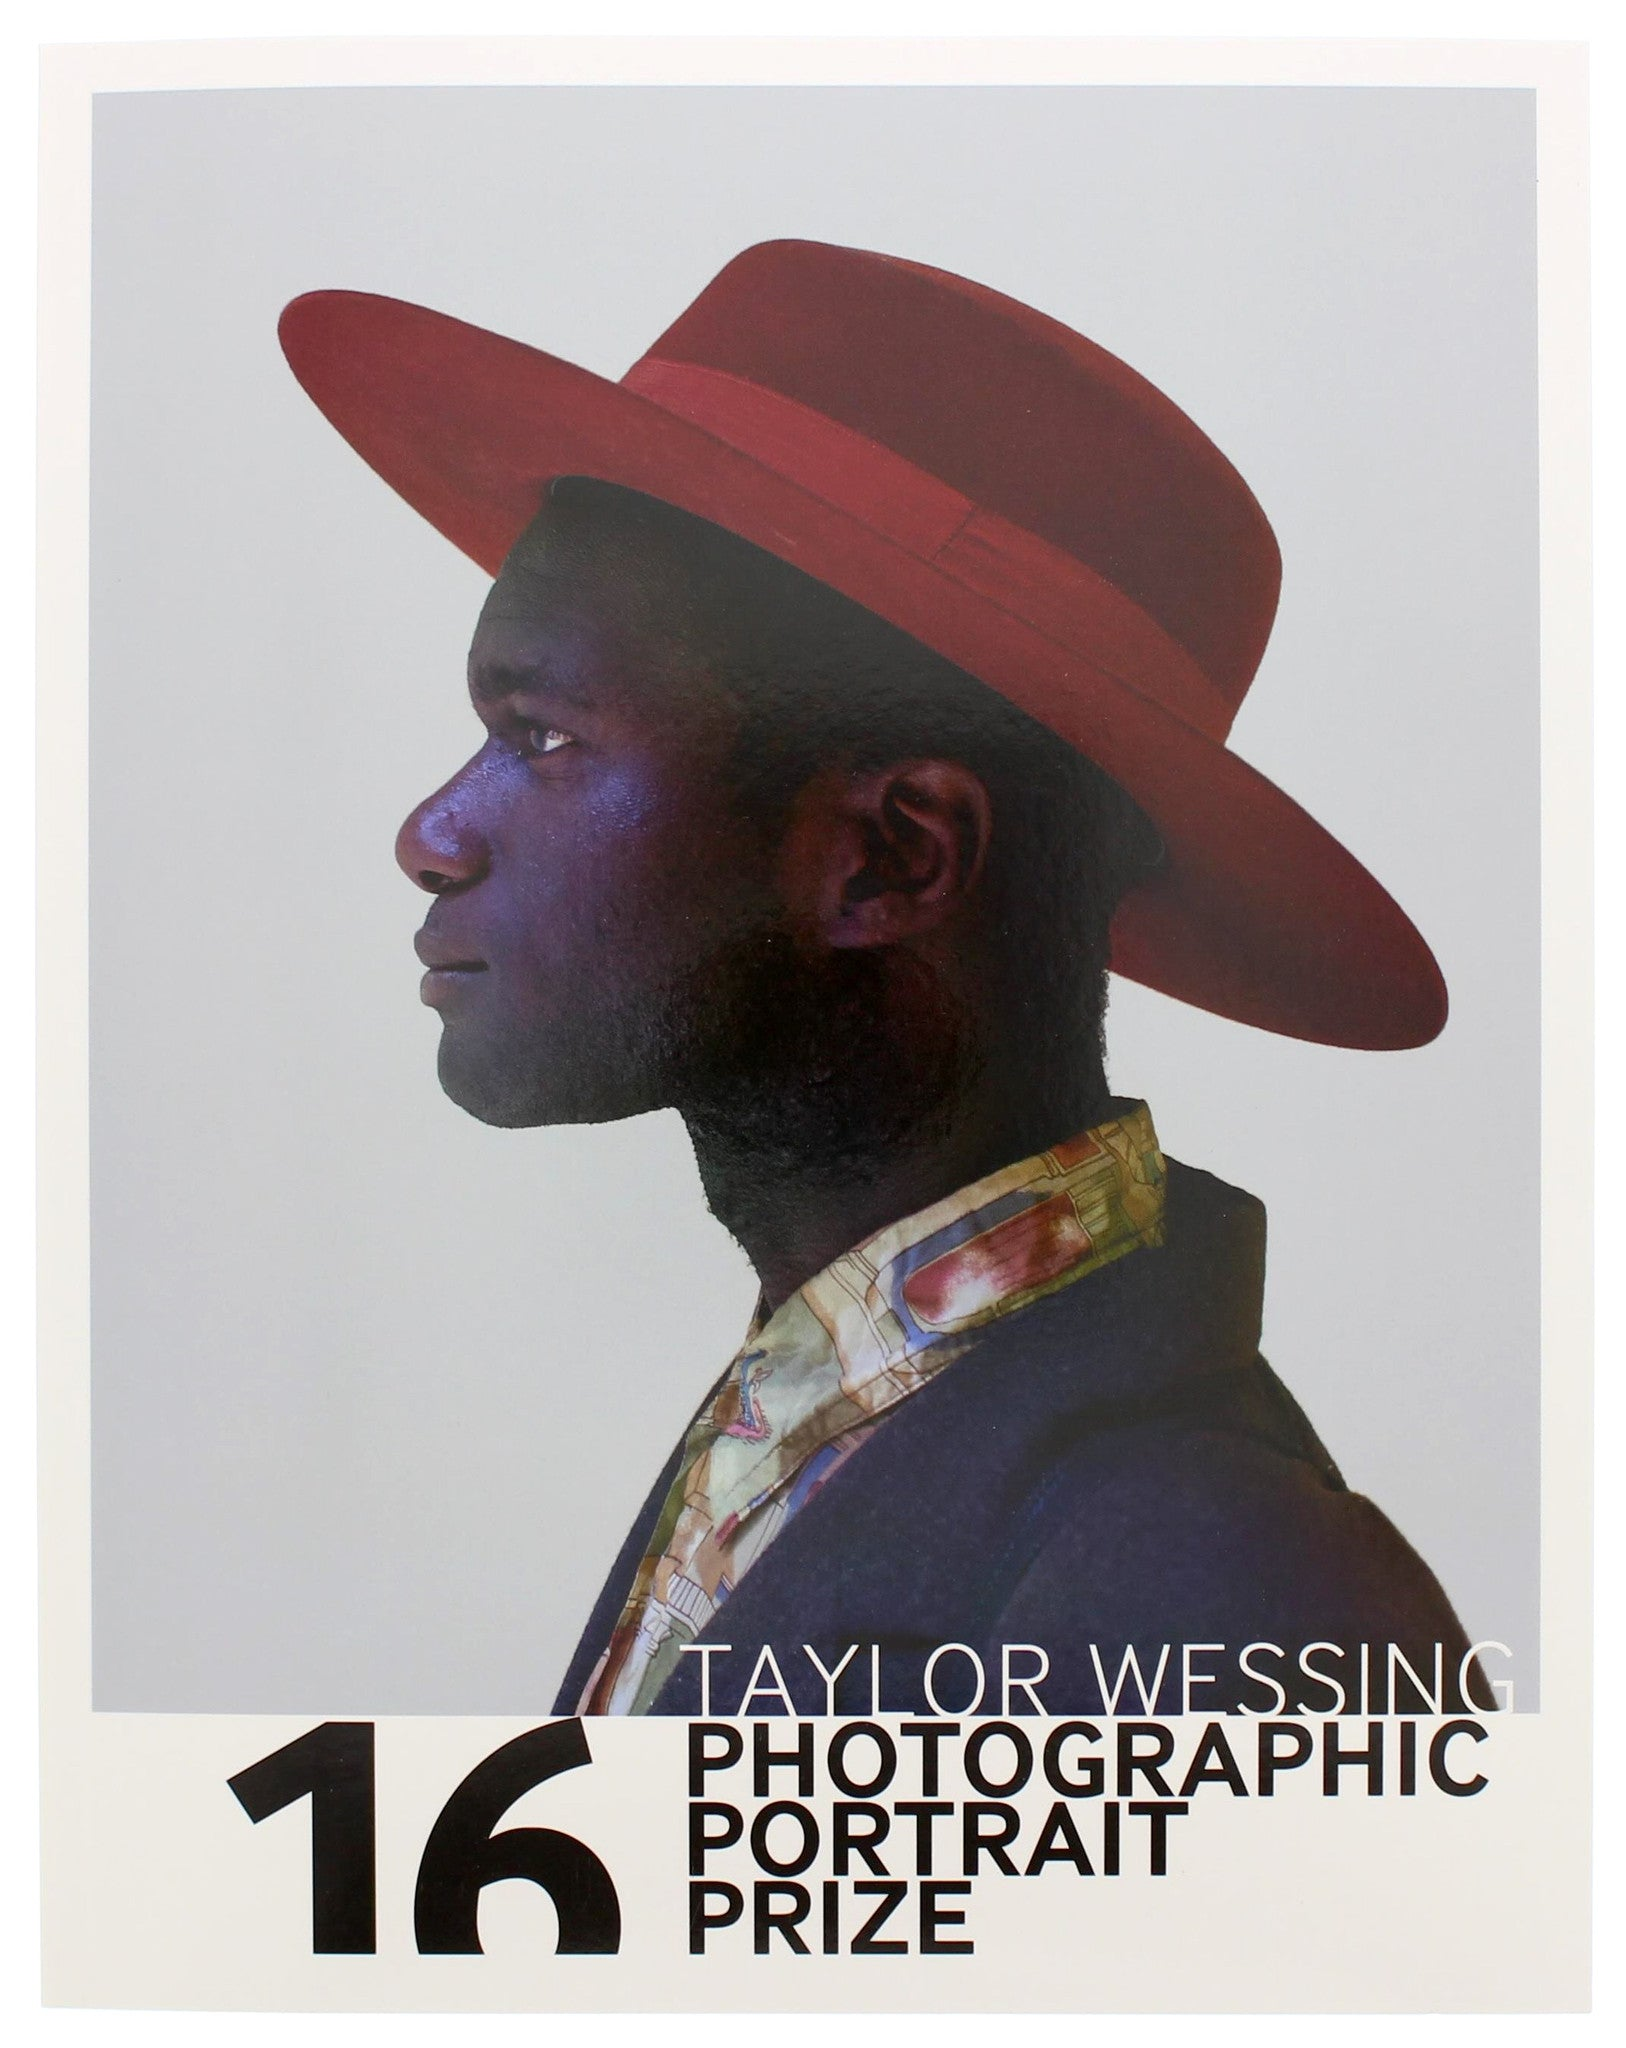 Taylor Wessing Photographic Portrait Prize 2016 Paperback Catalogue